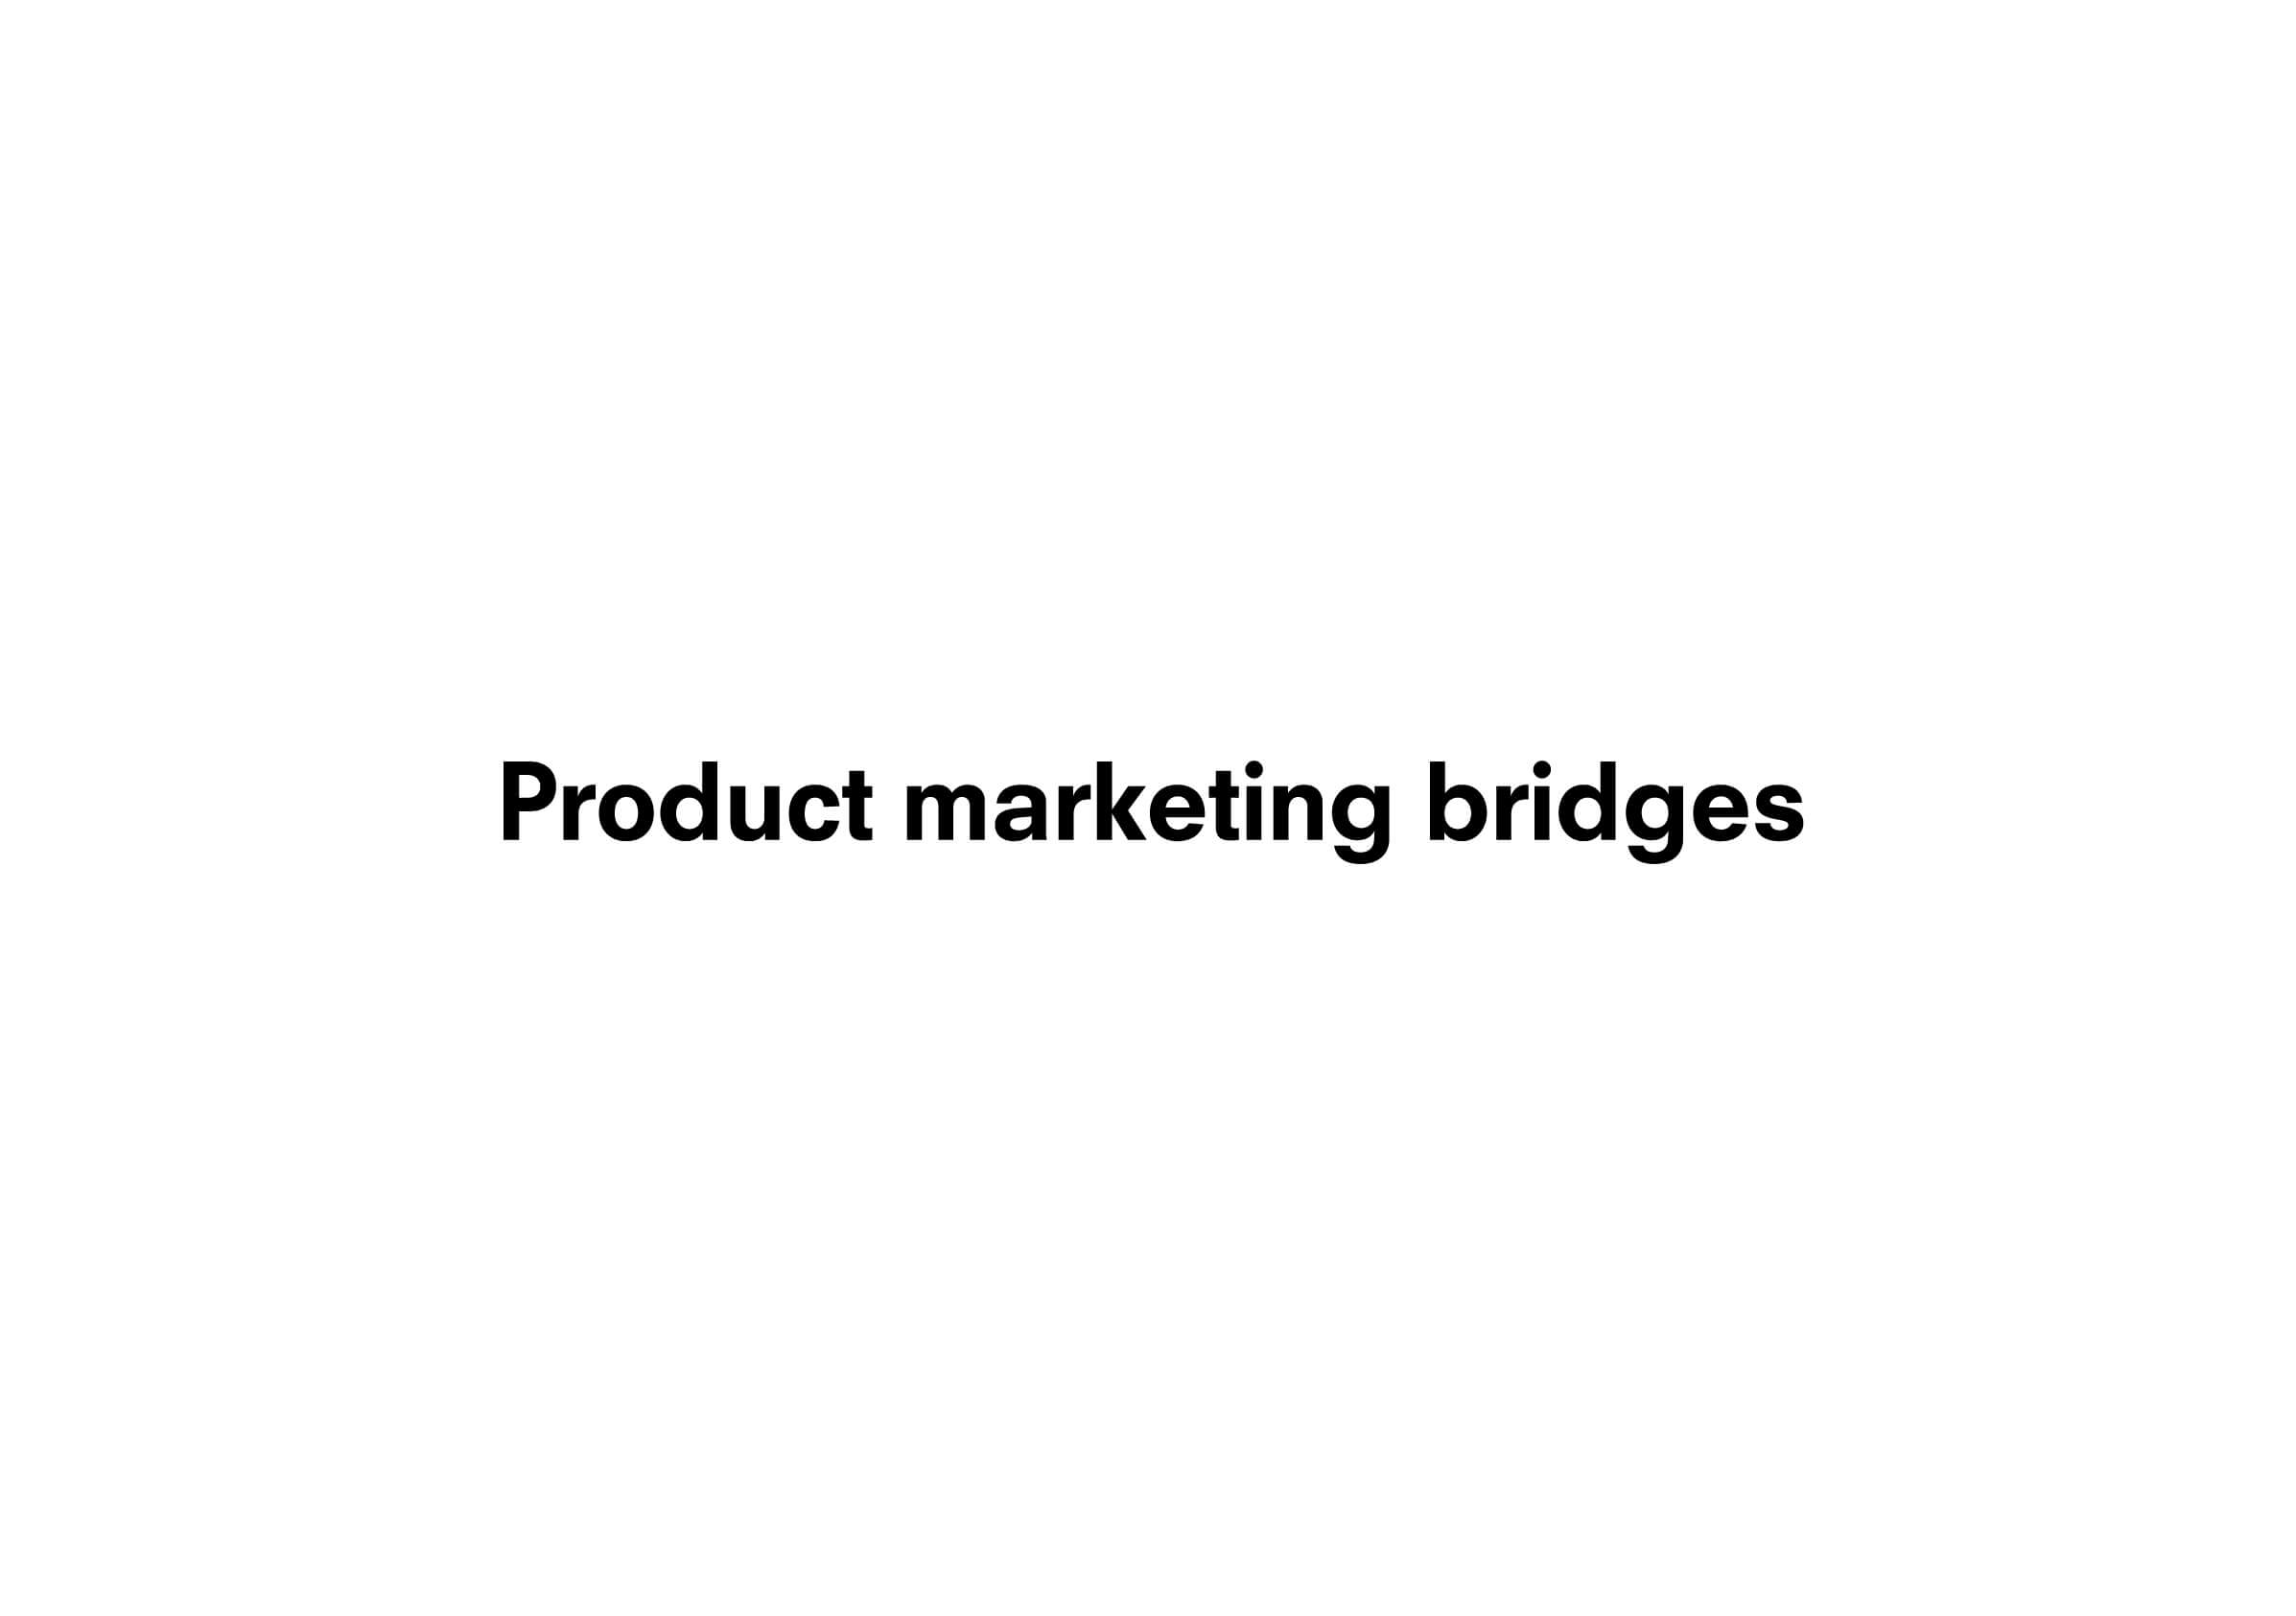 Product M tagline for New York-based product marketing company by Ottawa graphic designer idApostle